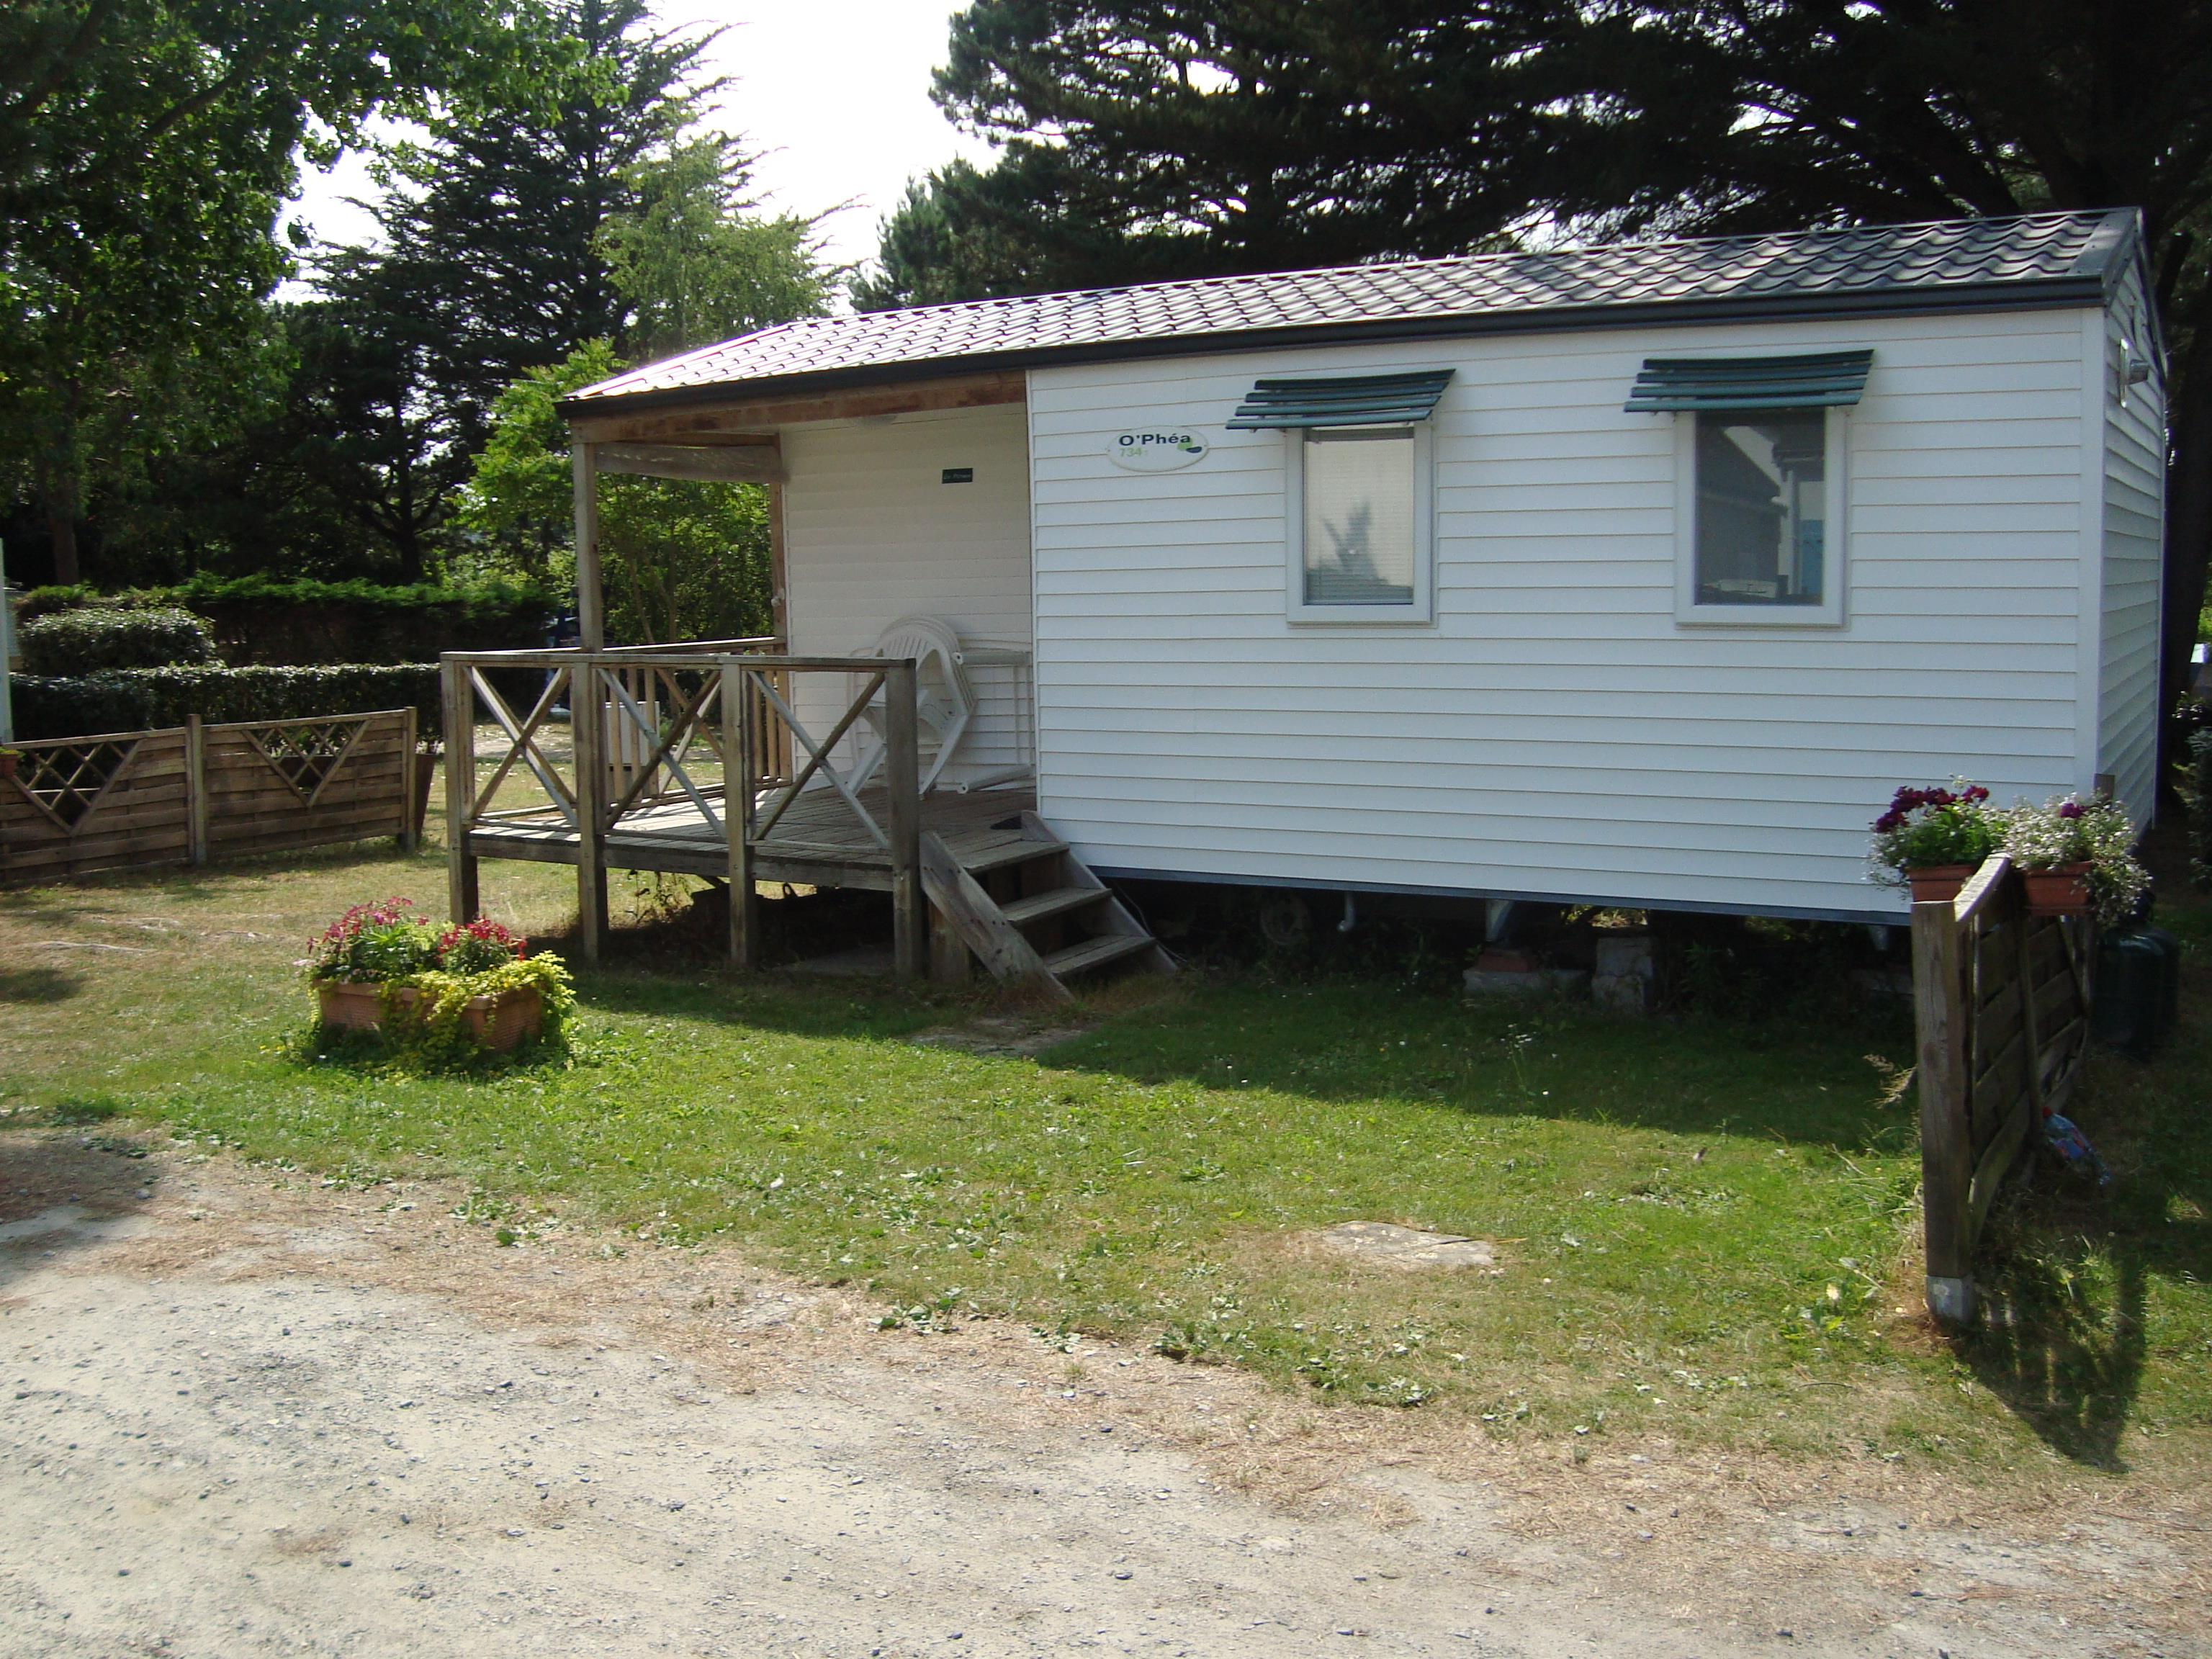 Mobile-home O'Phéa 28m² - 2 bedrooms